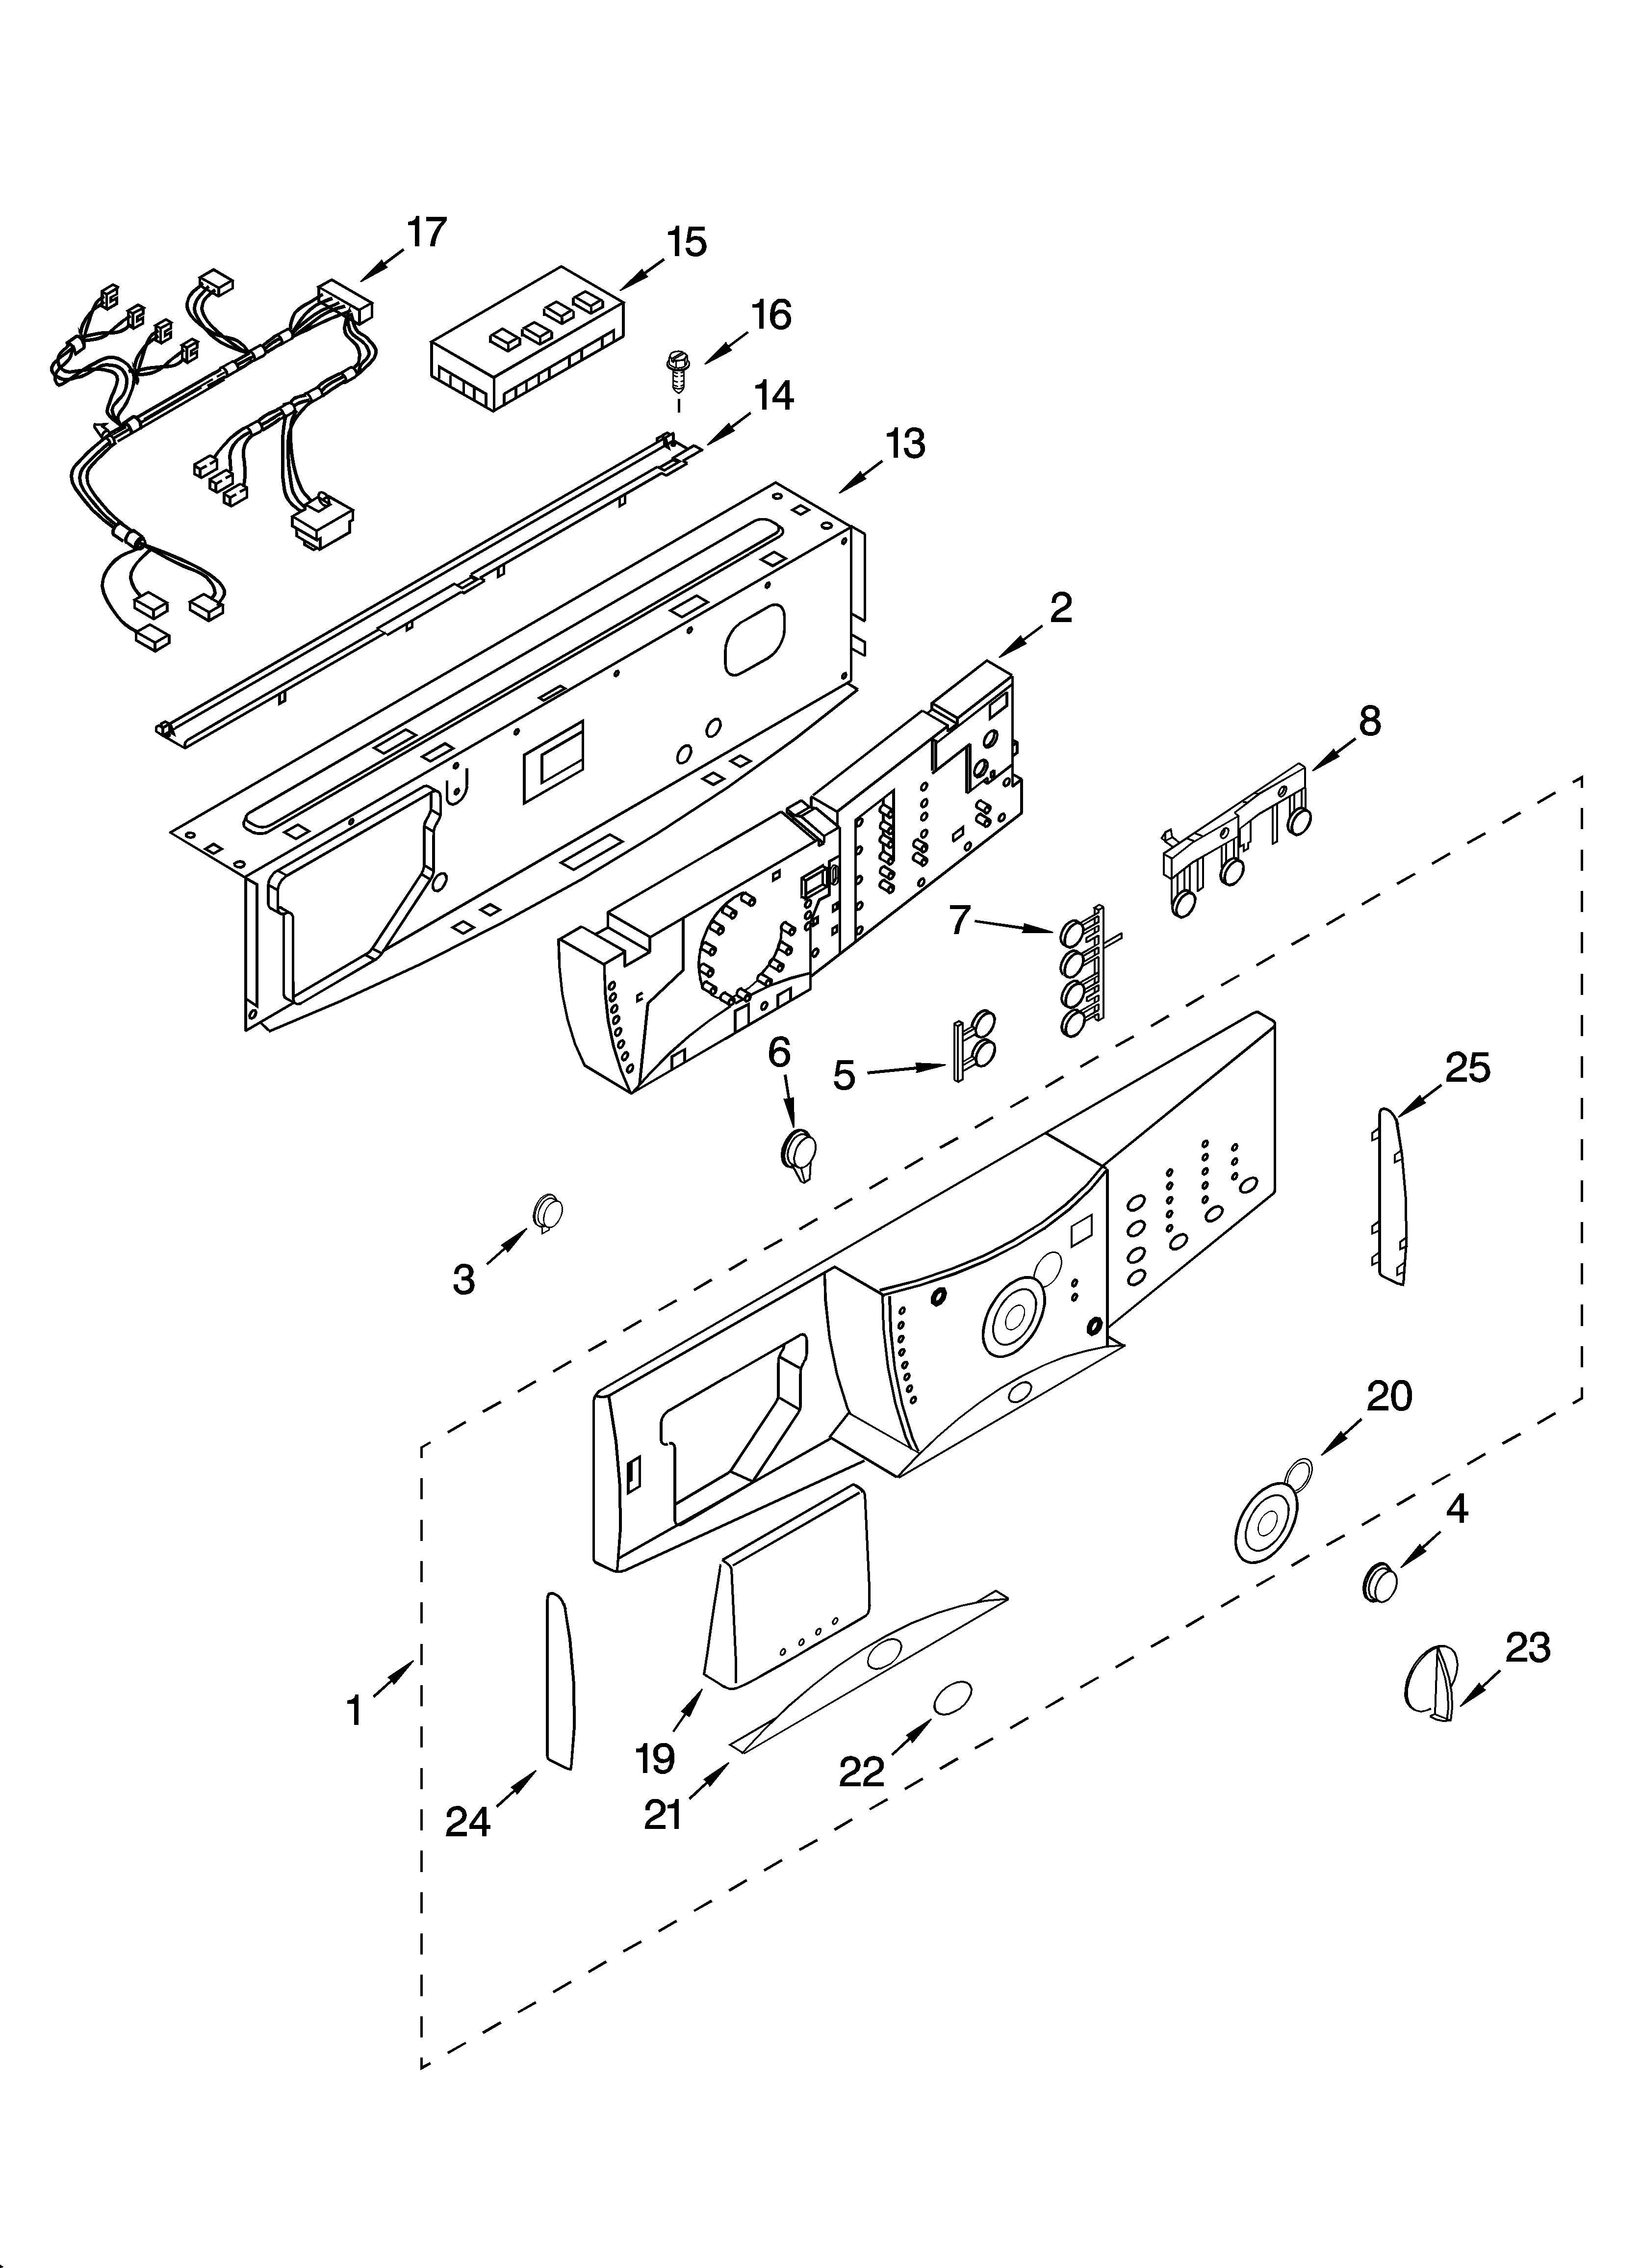 Whirlpool GHW9460PL3 control panel parts diagram